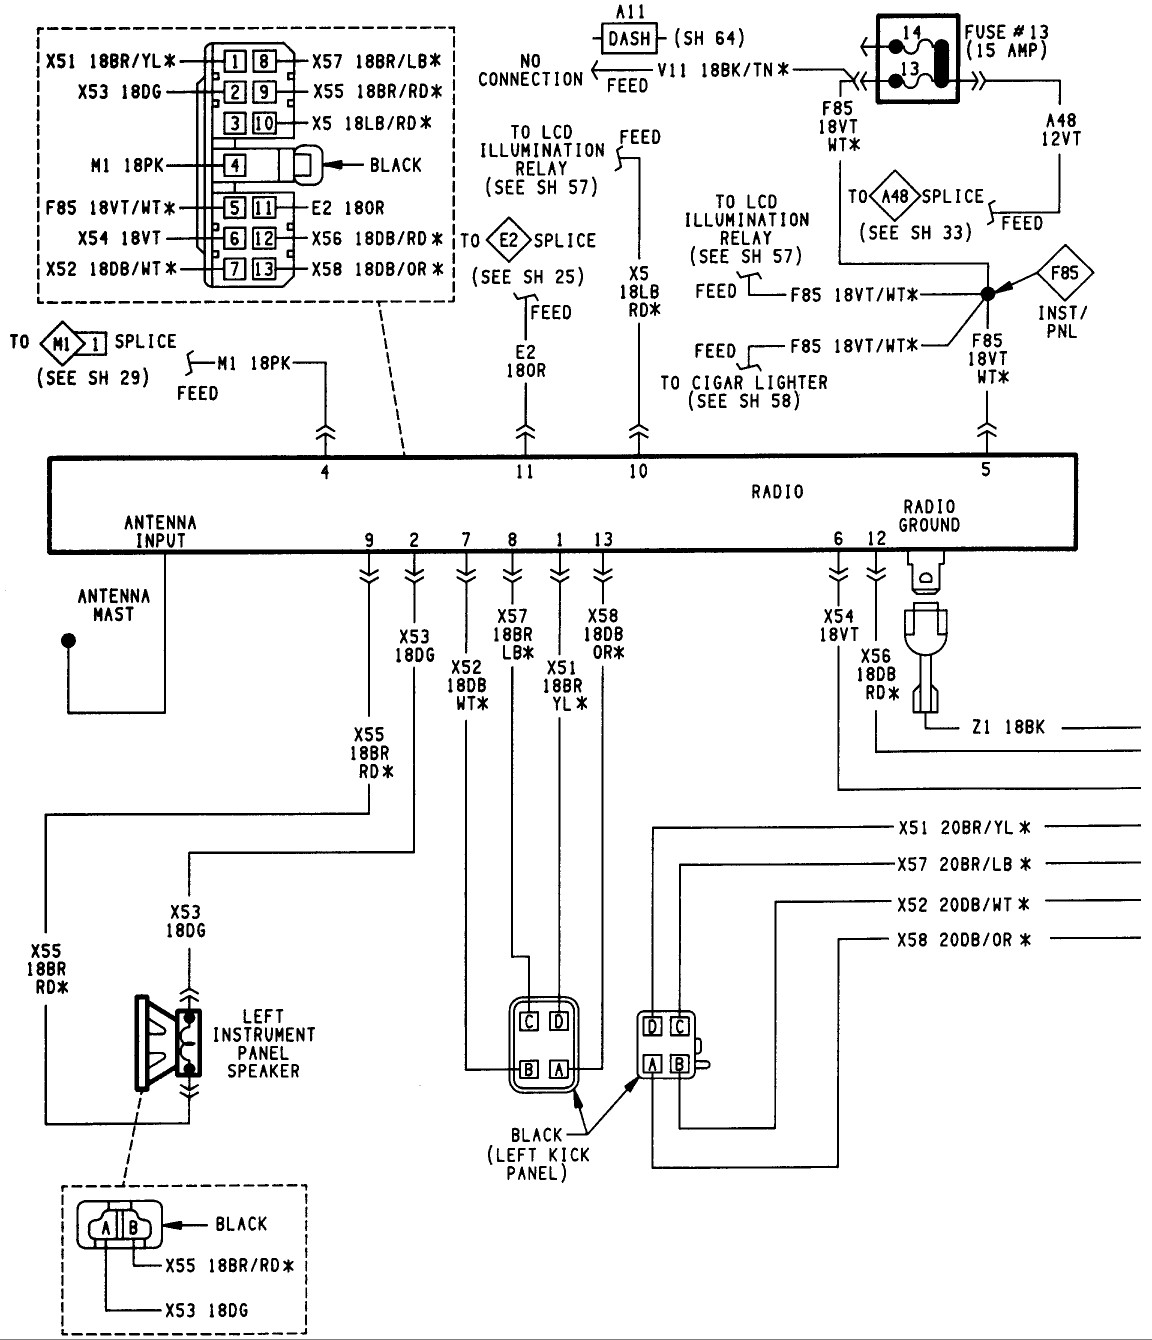 2001 jeep grand cherokee wiring diagram - Wiring Diagram ...